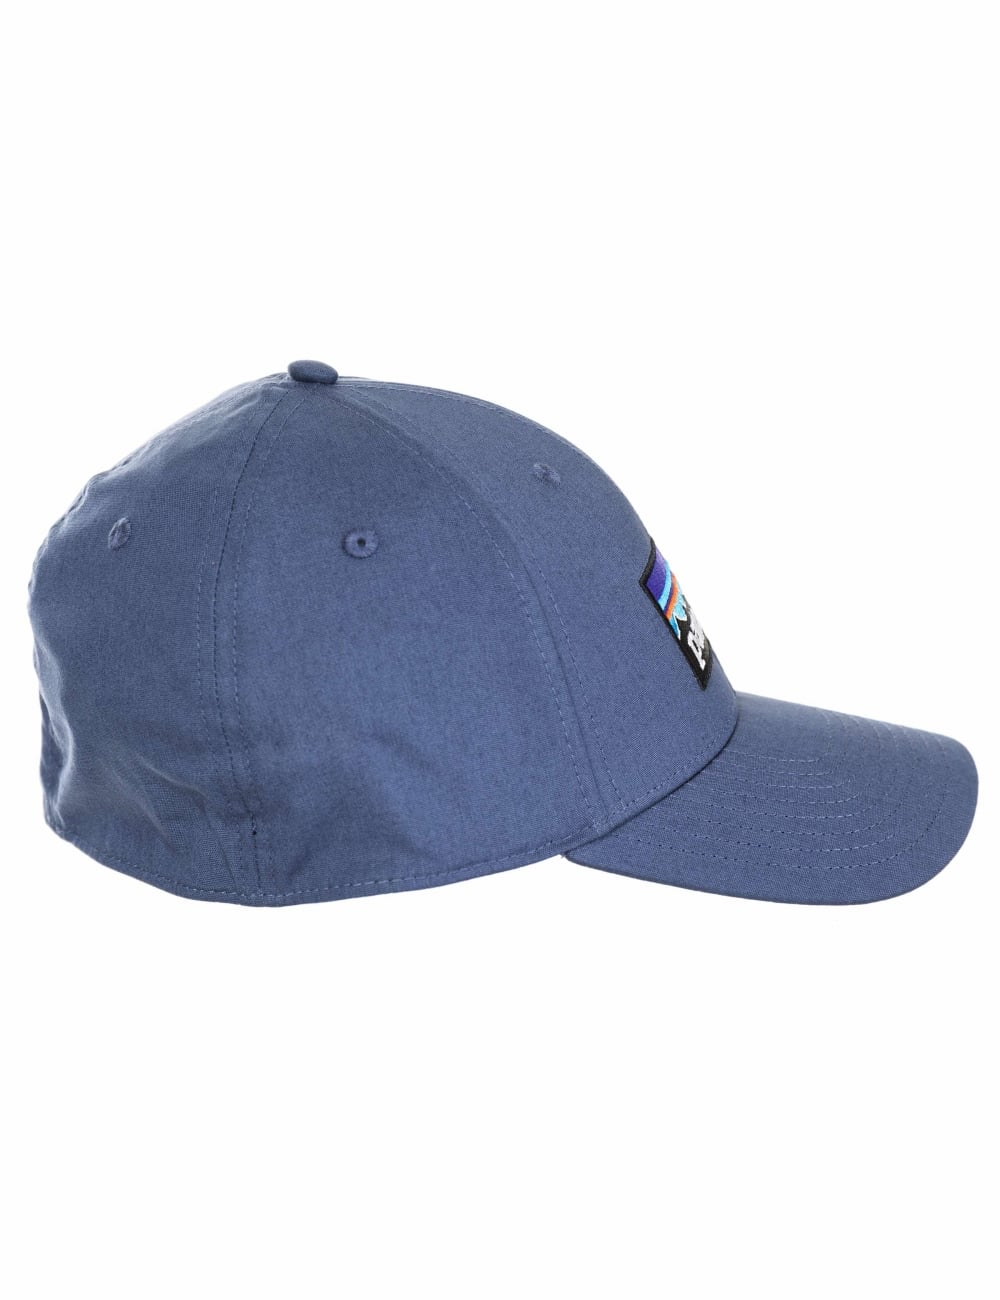 Patagonia P-6 Logo Stretch Fit Hat - Dolomite Blue - Accessories ... e8b335f0138